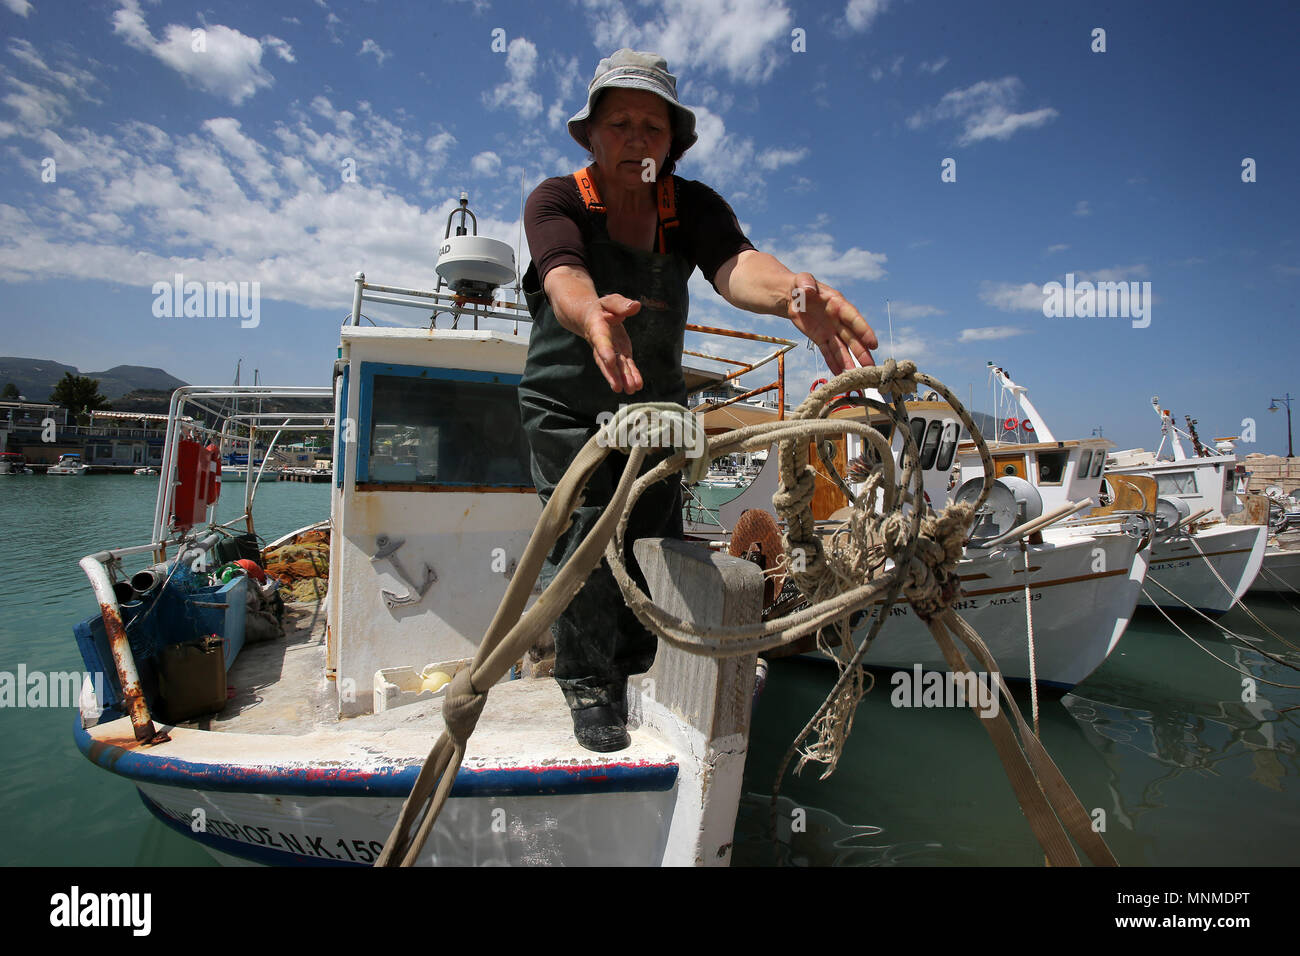 Xylokastro, Peloponnese in Greece. 17th May, 2018. A woman unties the ropes casting off the fishing boat from the marina of Xylokastro, a popular tourist destination of Peloponnese in Greece, May 17, 2018. Due to the economic crisis and over exploitation of the sea, the majority of Greek fishermen is hard to make a living. Credit: Marios Lolos/Xinhua/Alamy Live News Stock Photo